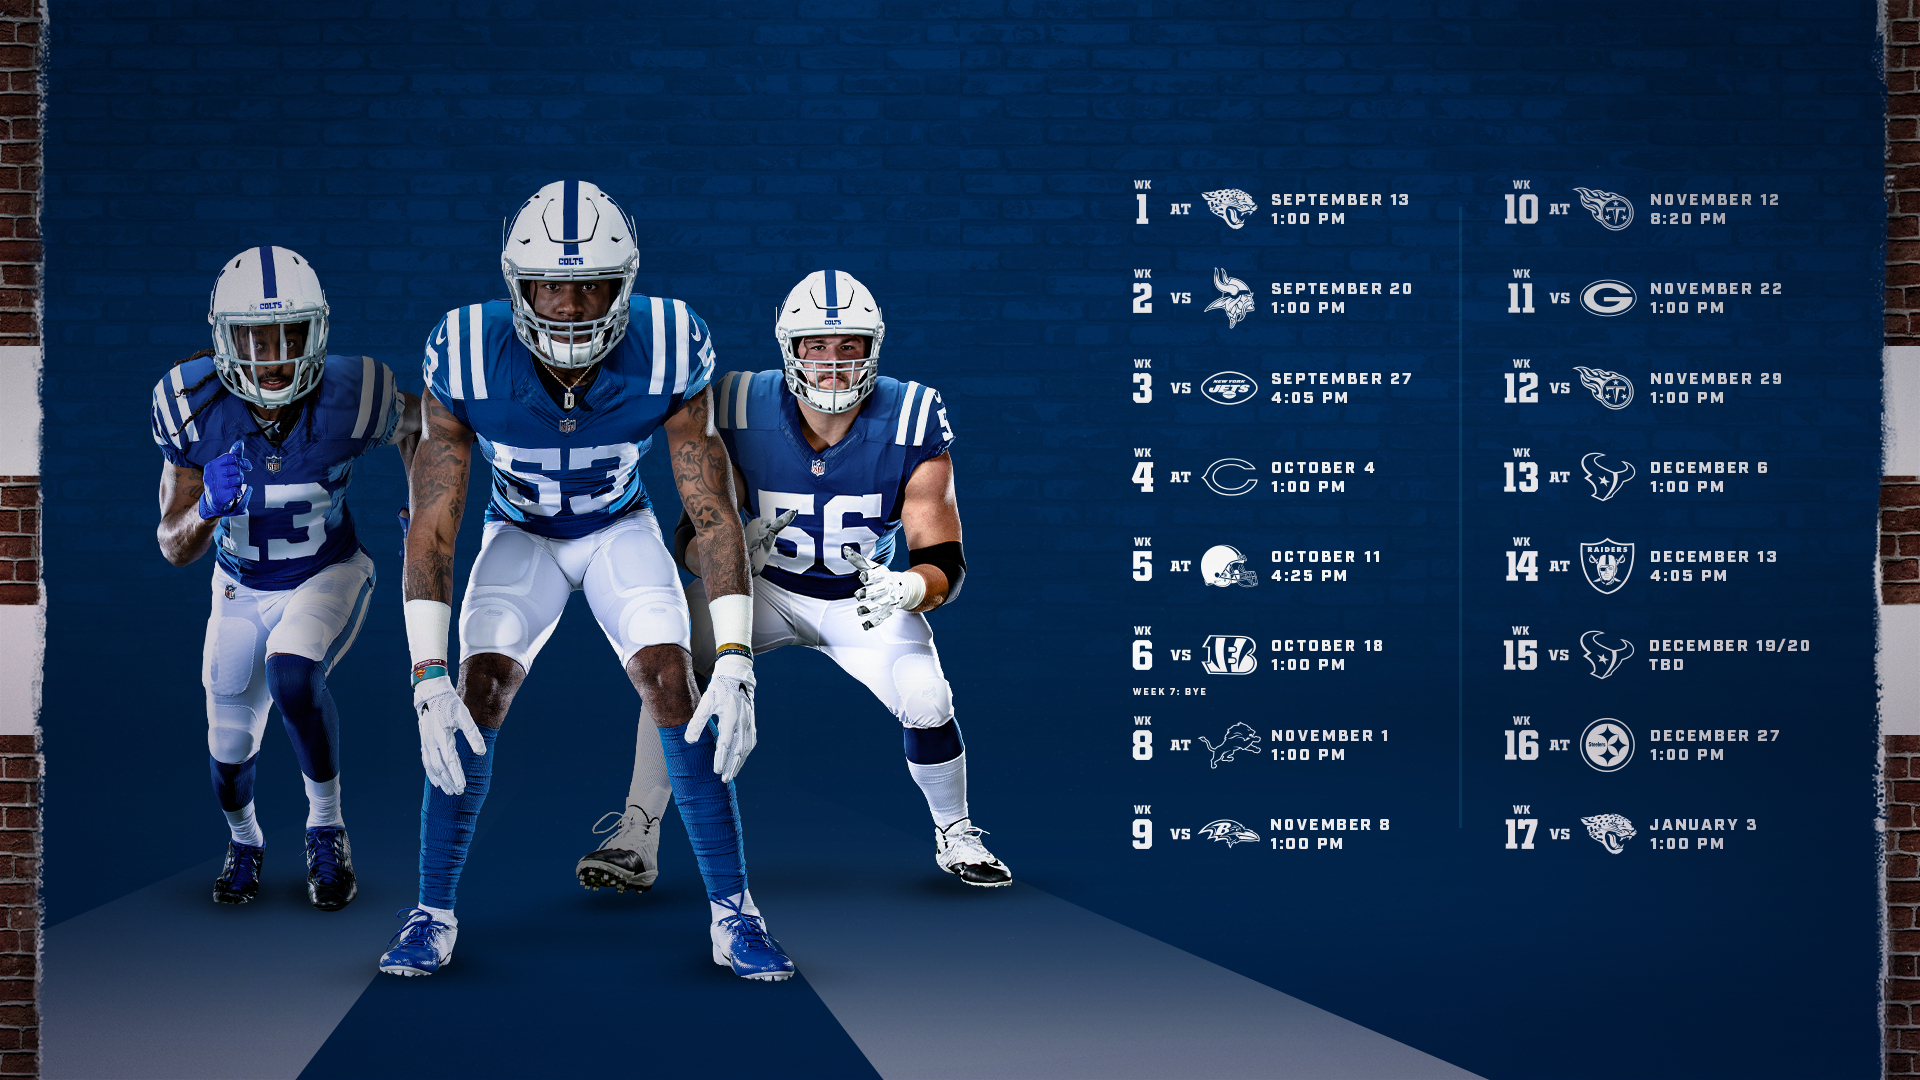 Colts Schedule   Indianapolis Colts - Colts in Nfl 2021 Schedule Printable